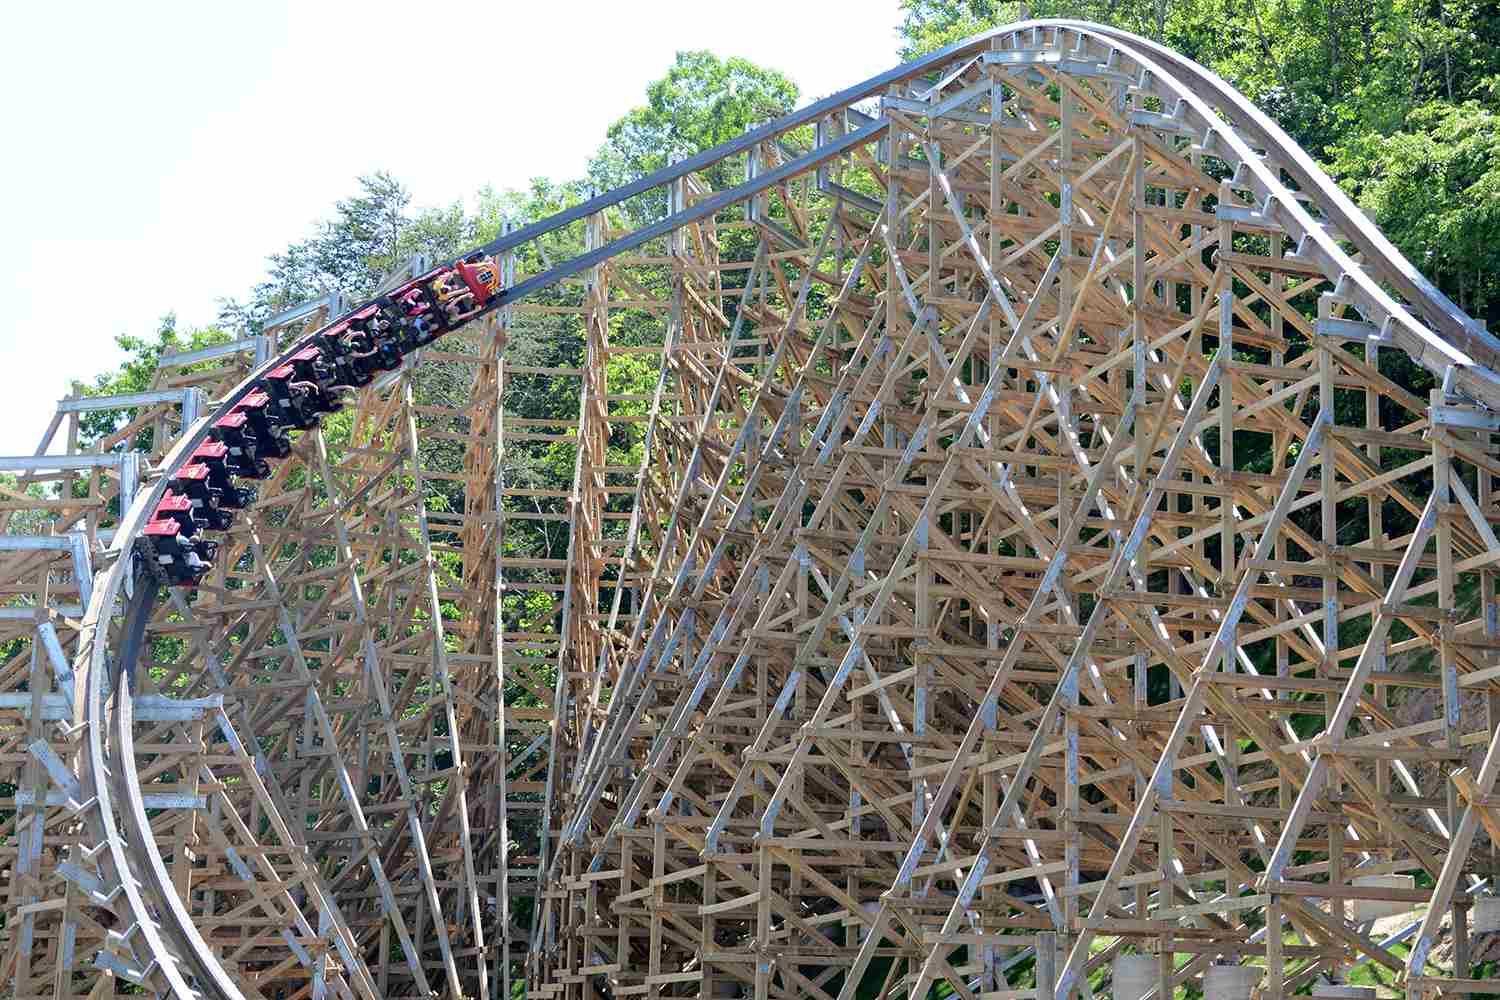 10 Fastest Wooden Roller Coasters - Updated for 2017